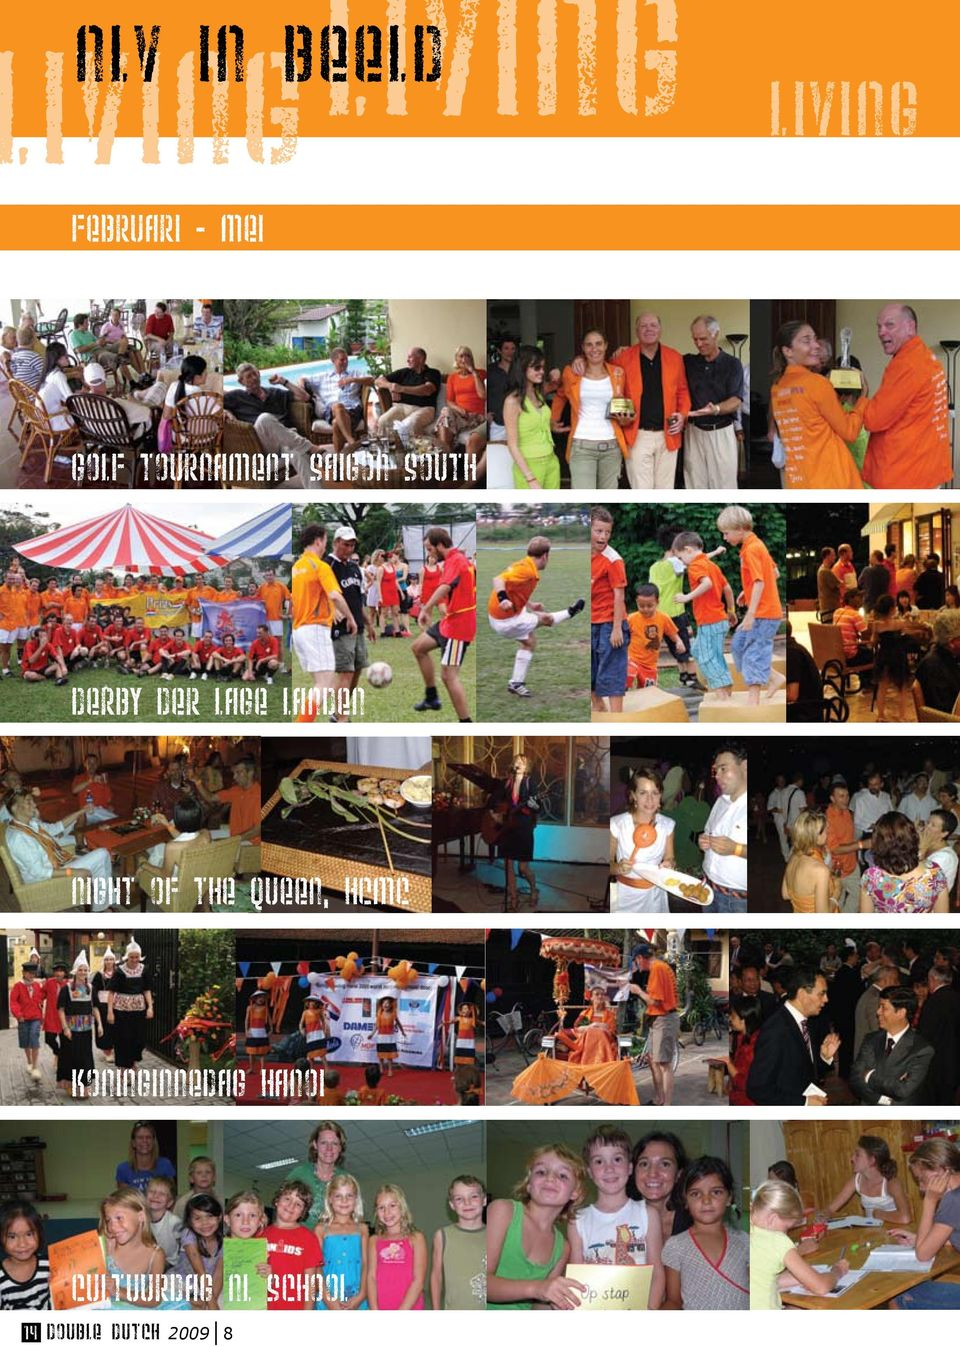 landen Night of the queen, HCMC koninginnedag